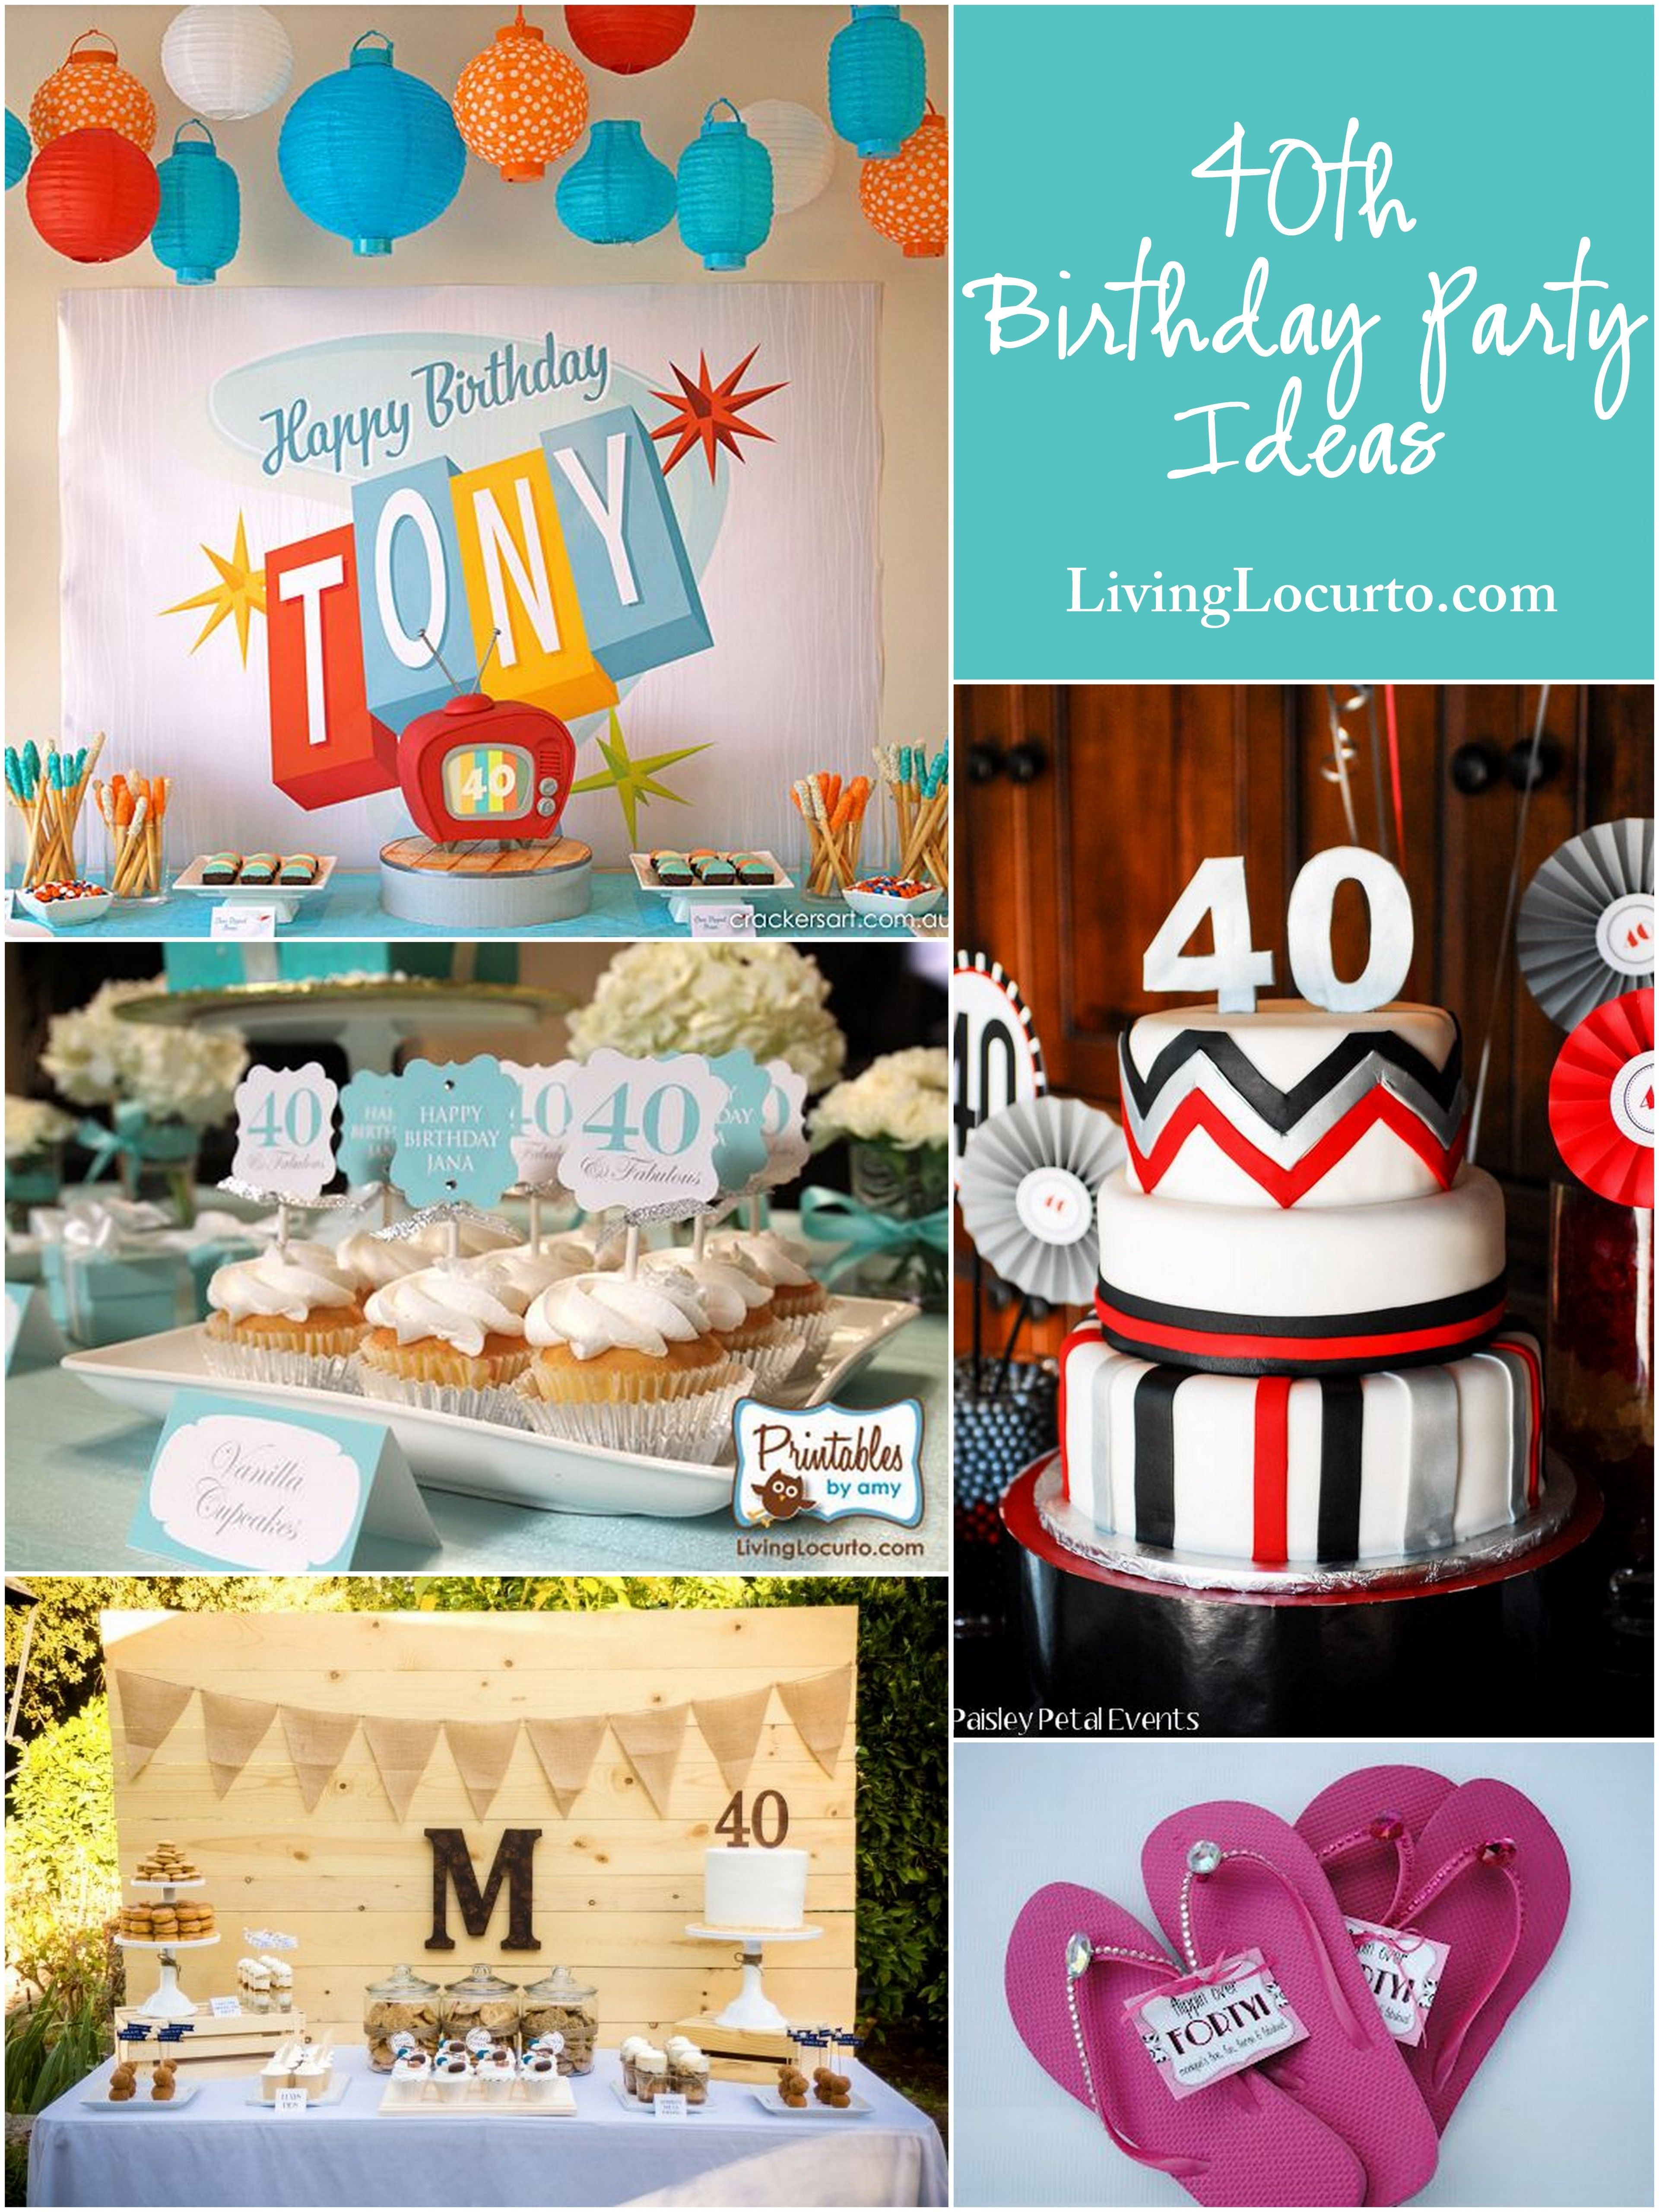 themes shower decor baby beautiful ideas decorations celebration of by gatsby s lovely party me birthday